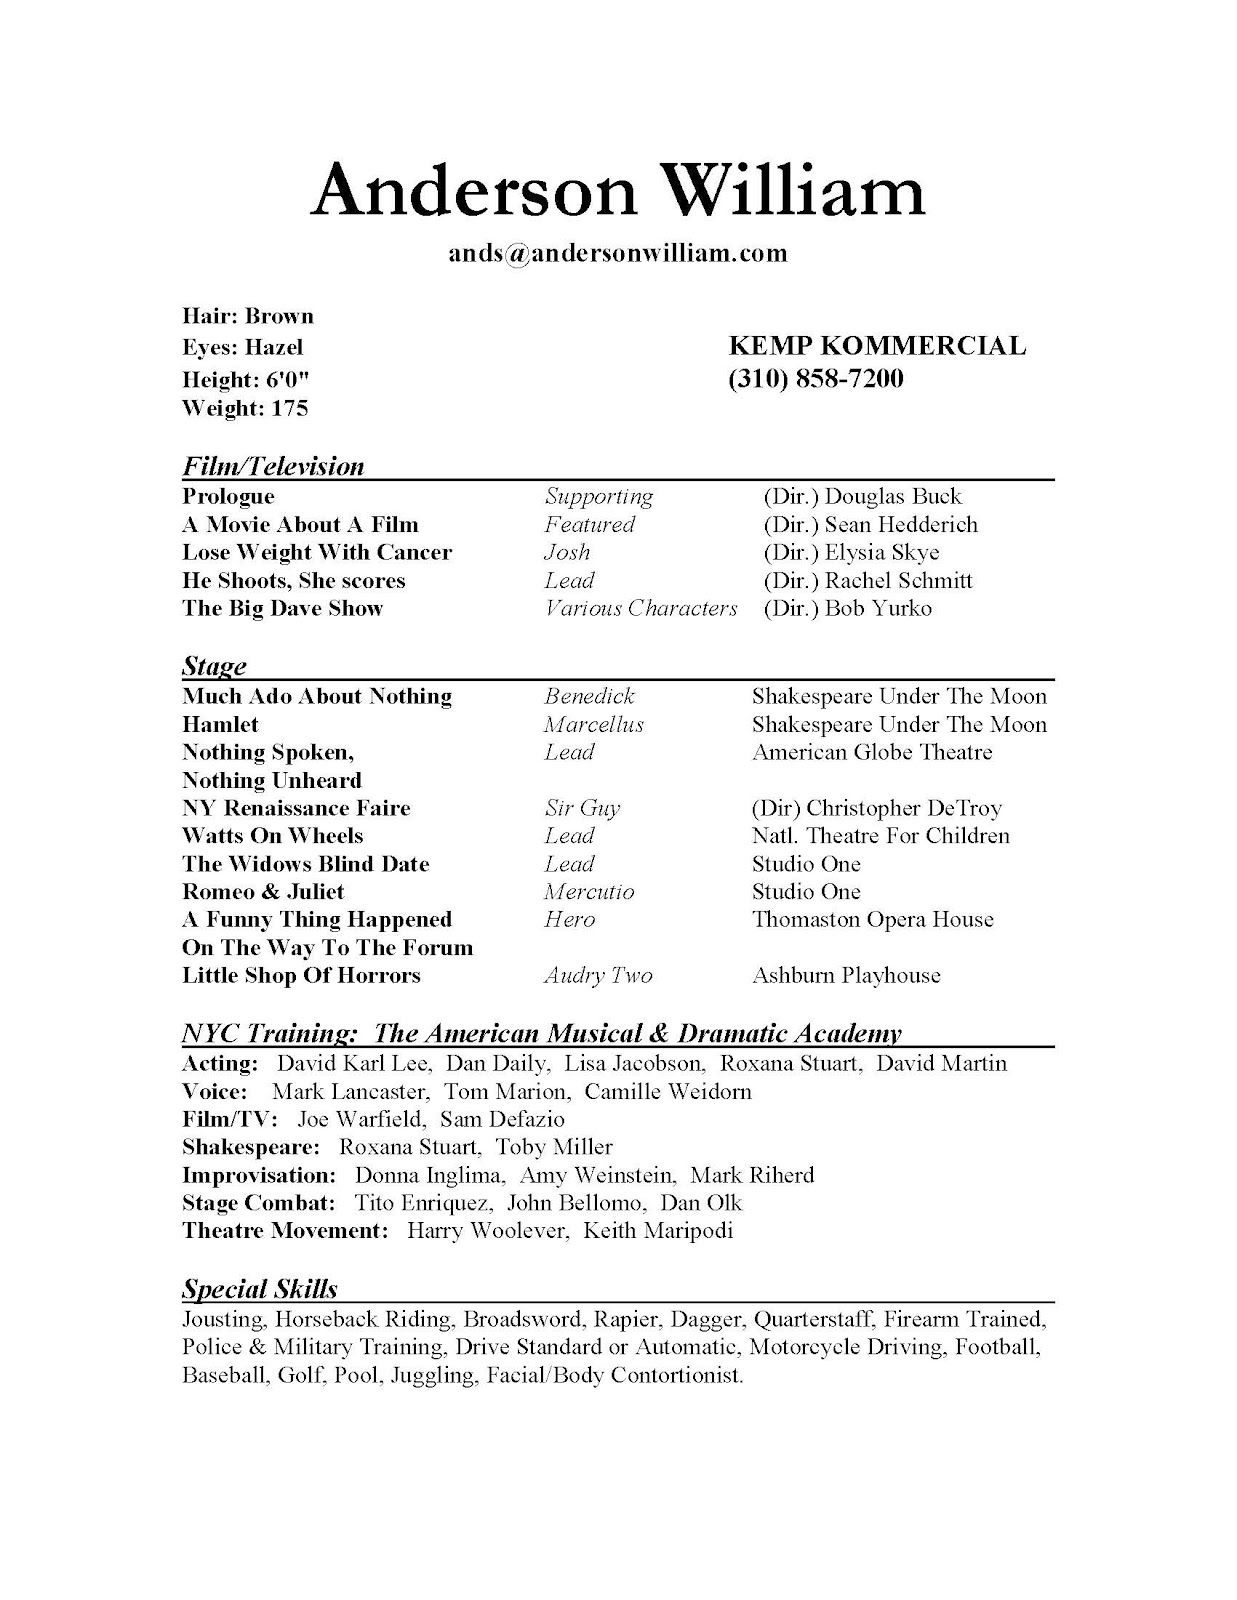 Beginning Child Actor Resume Template